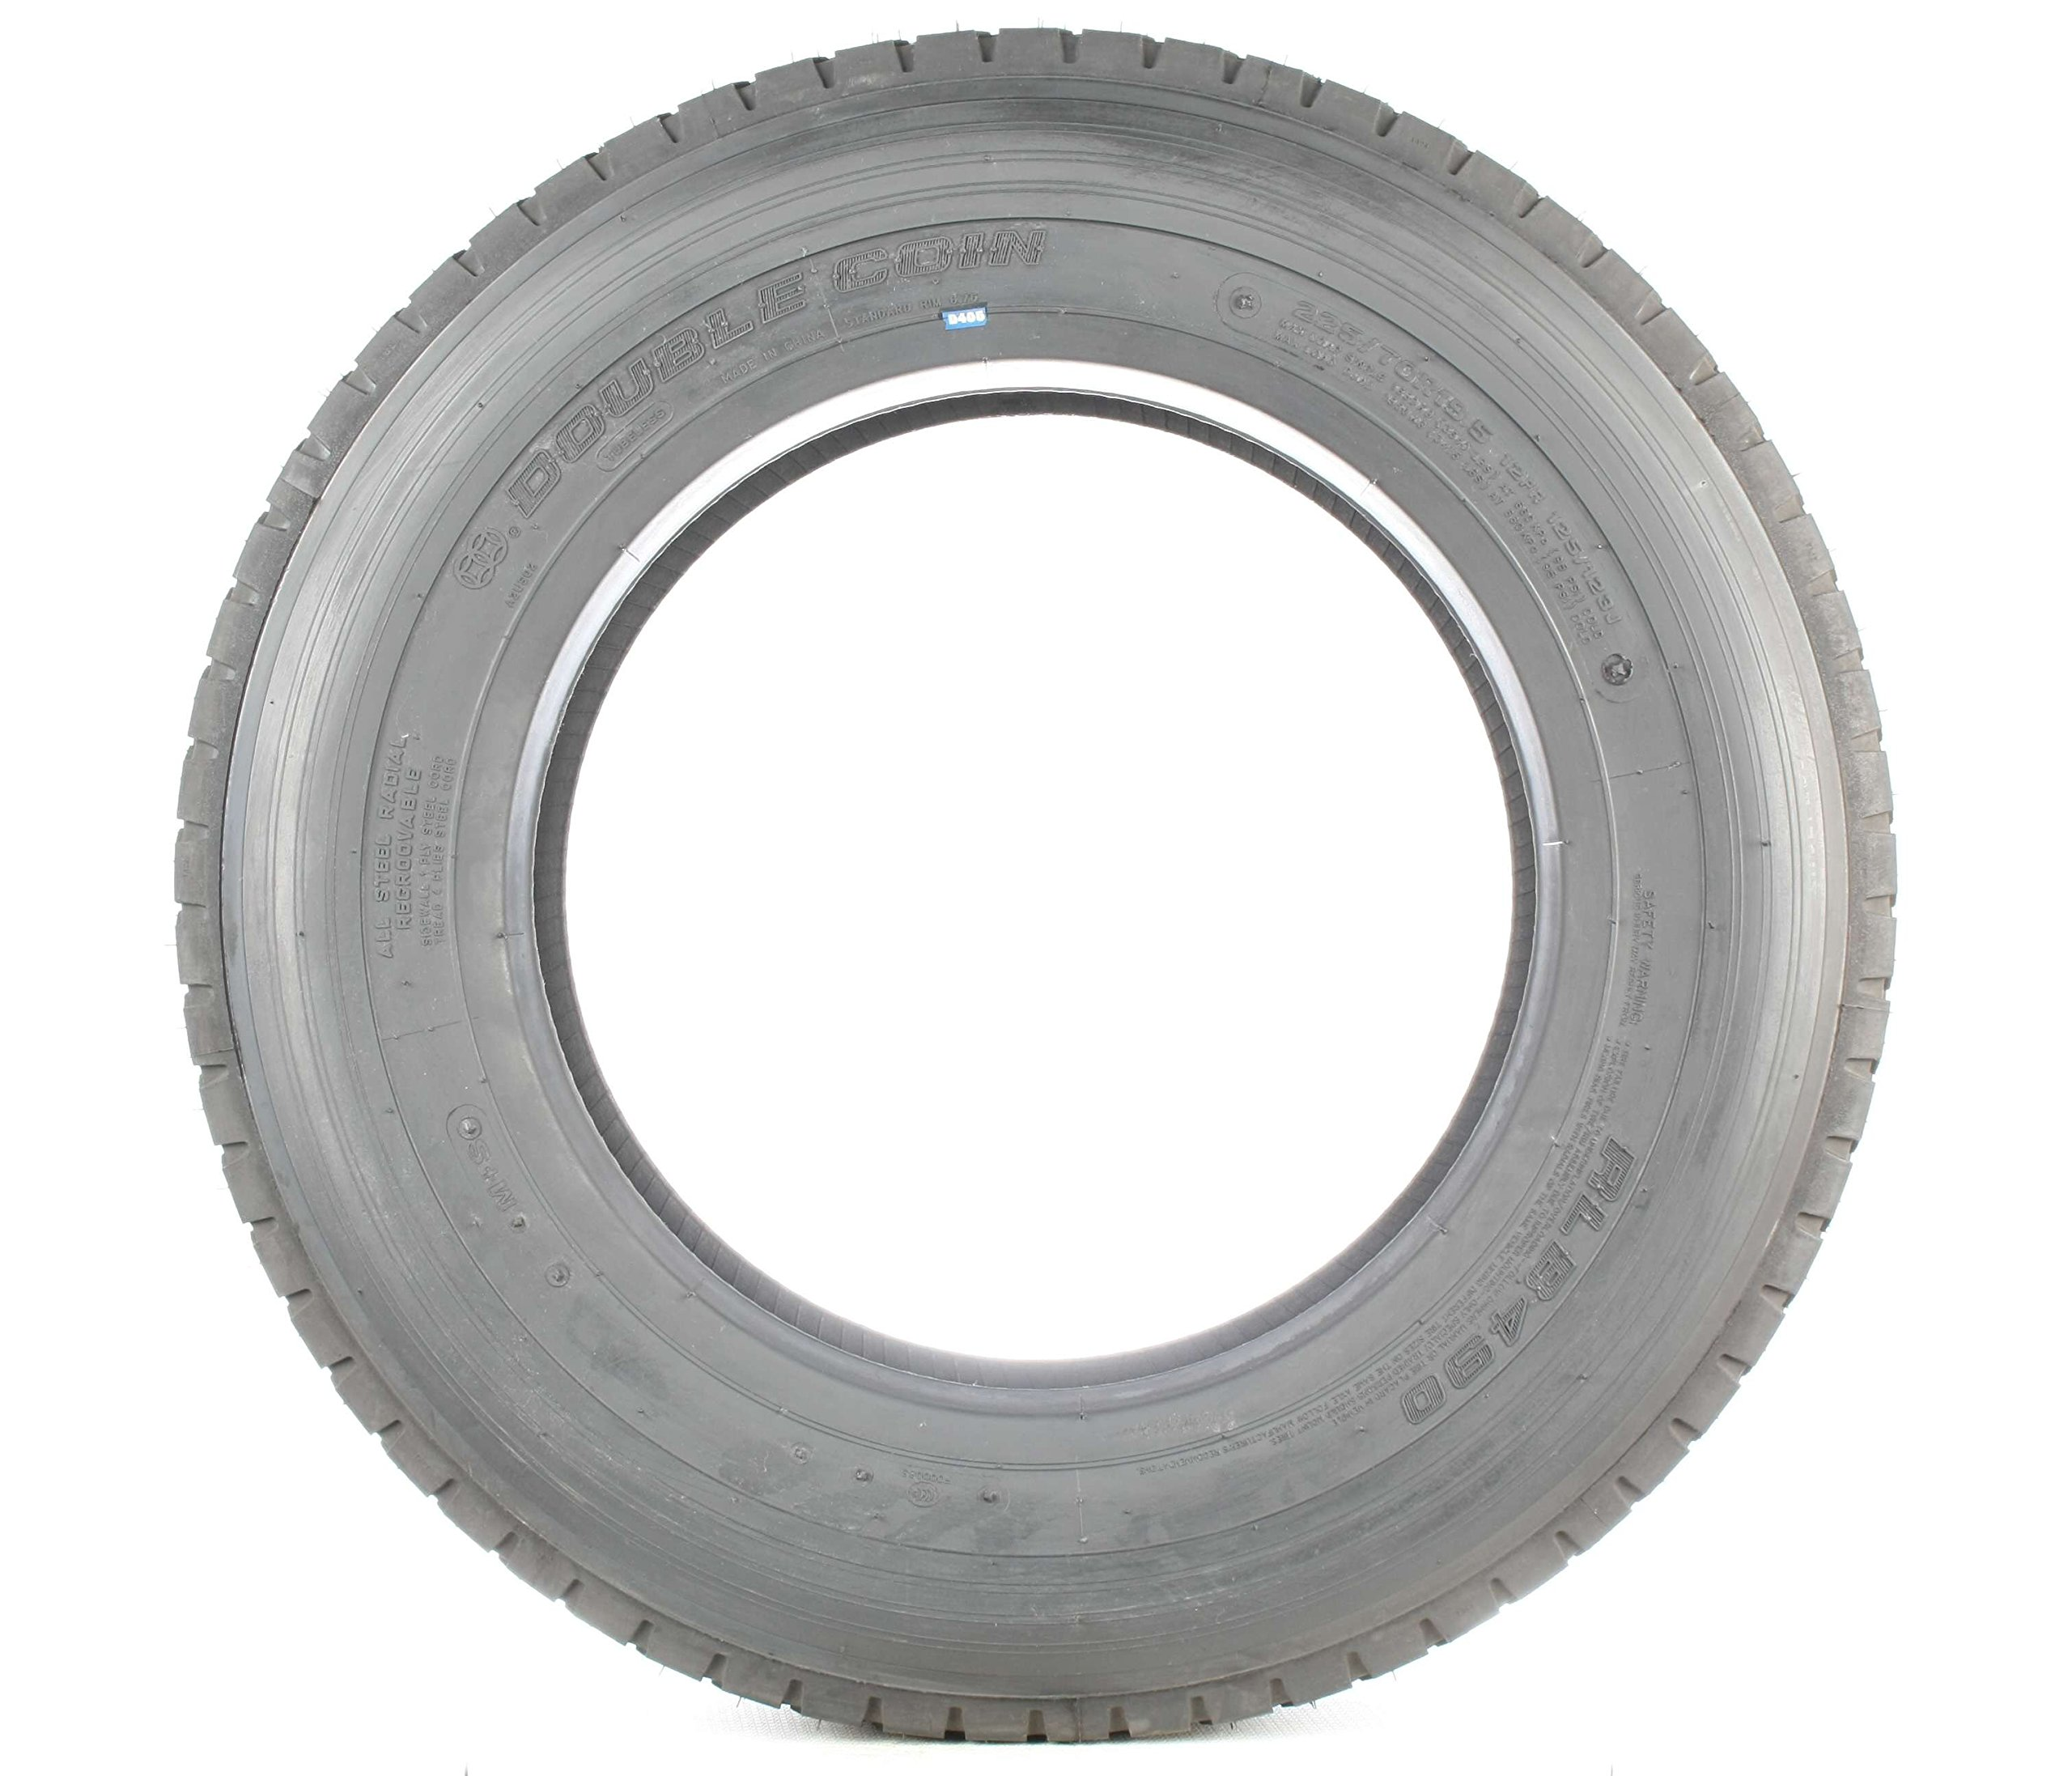 Double Coin RLB490 Low Profile Drive-Position Multi-Use Commercial Radial Truck Tire - 225/70R19.5 12 ply by Double Coin (Image #4)